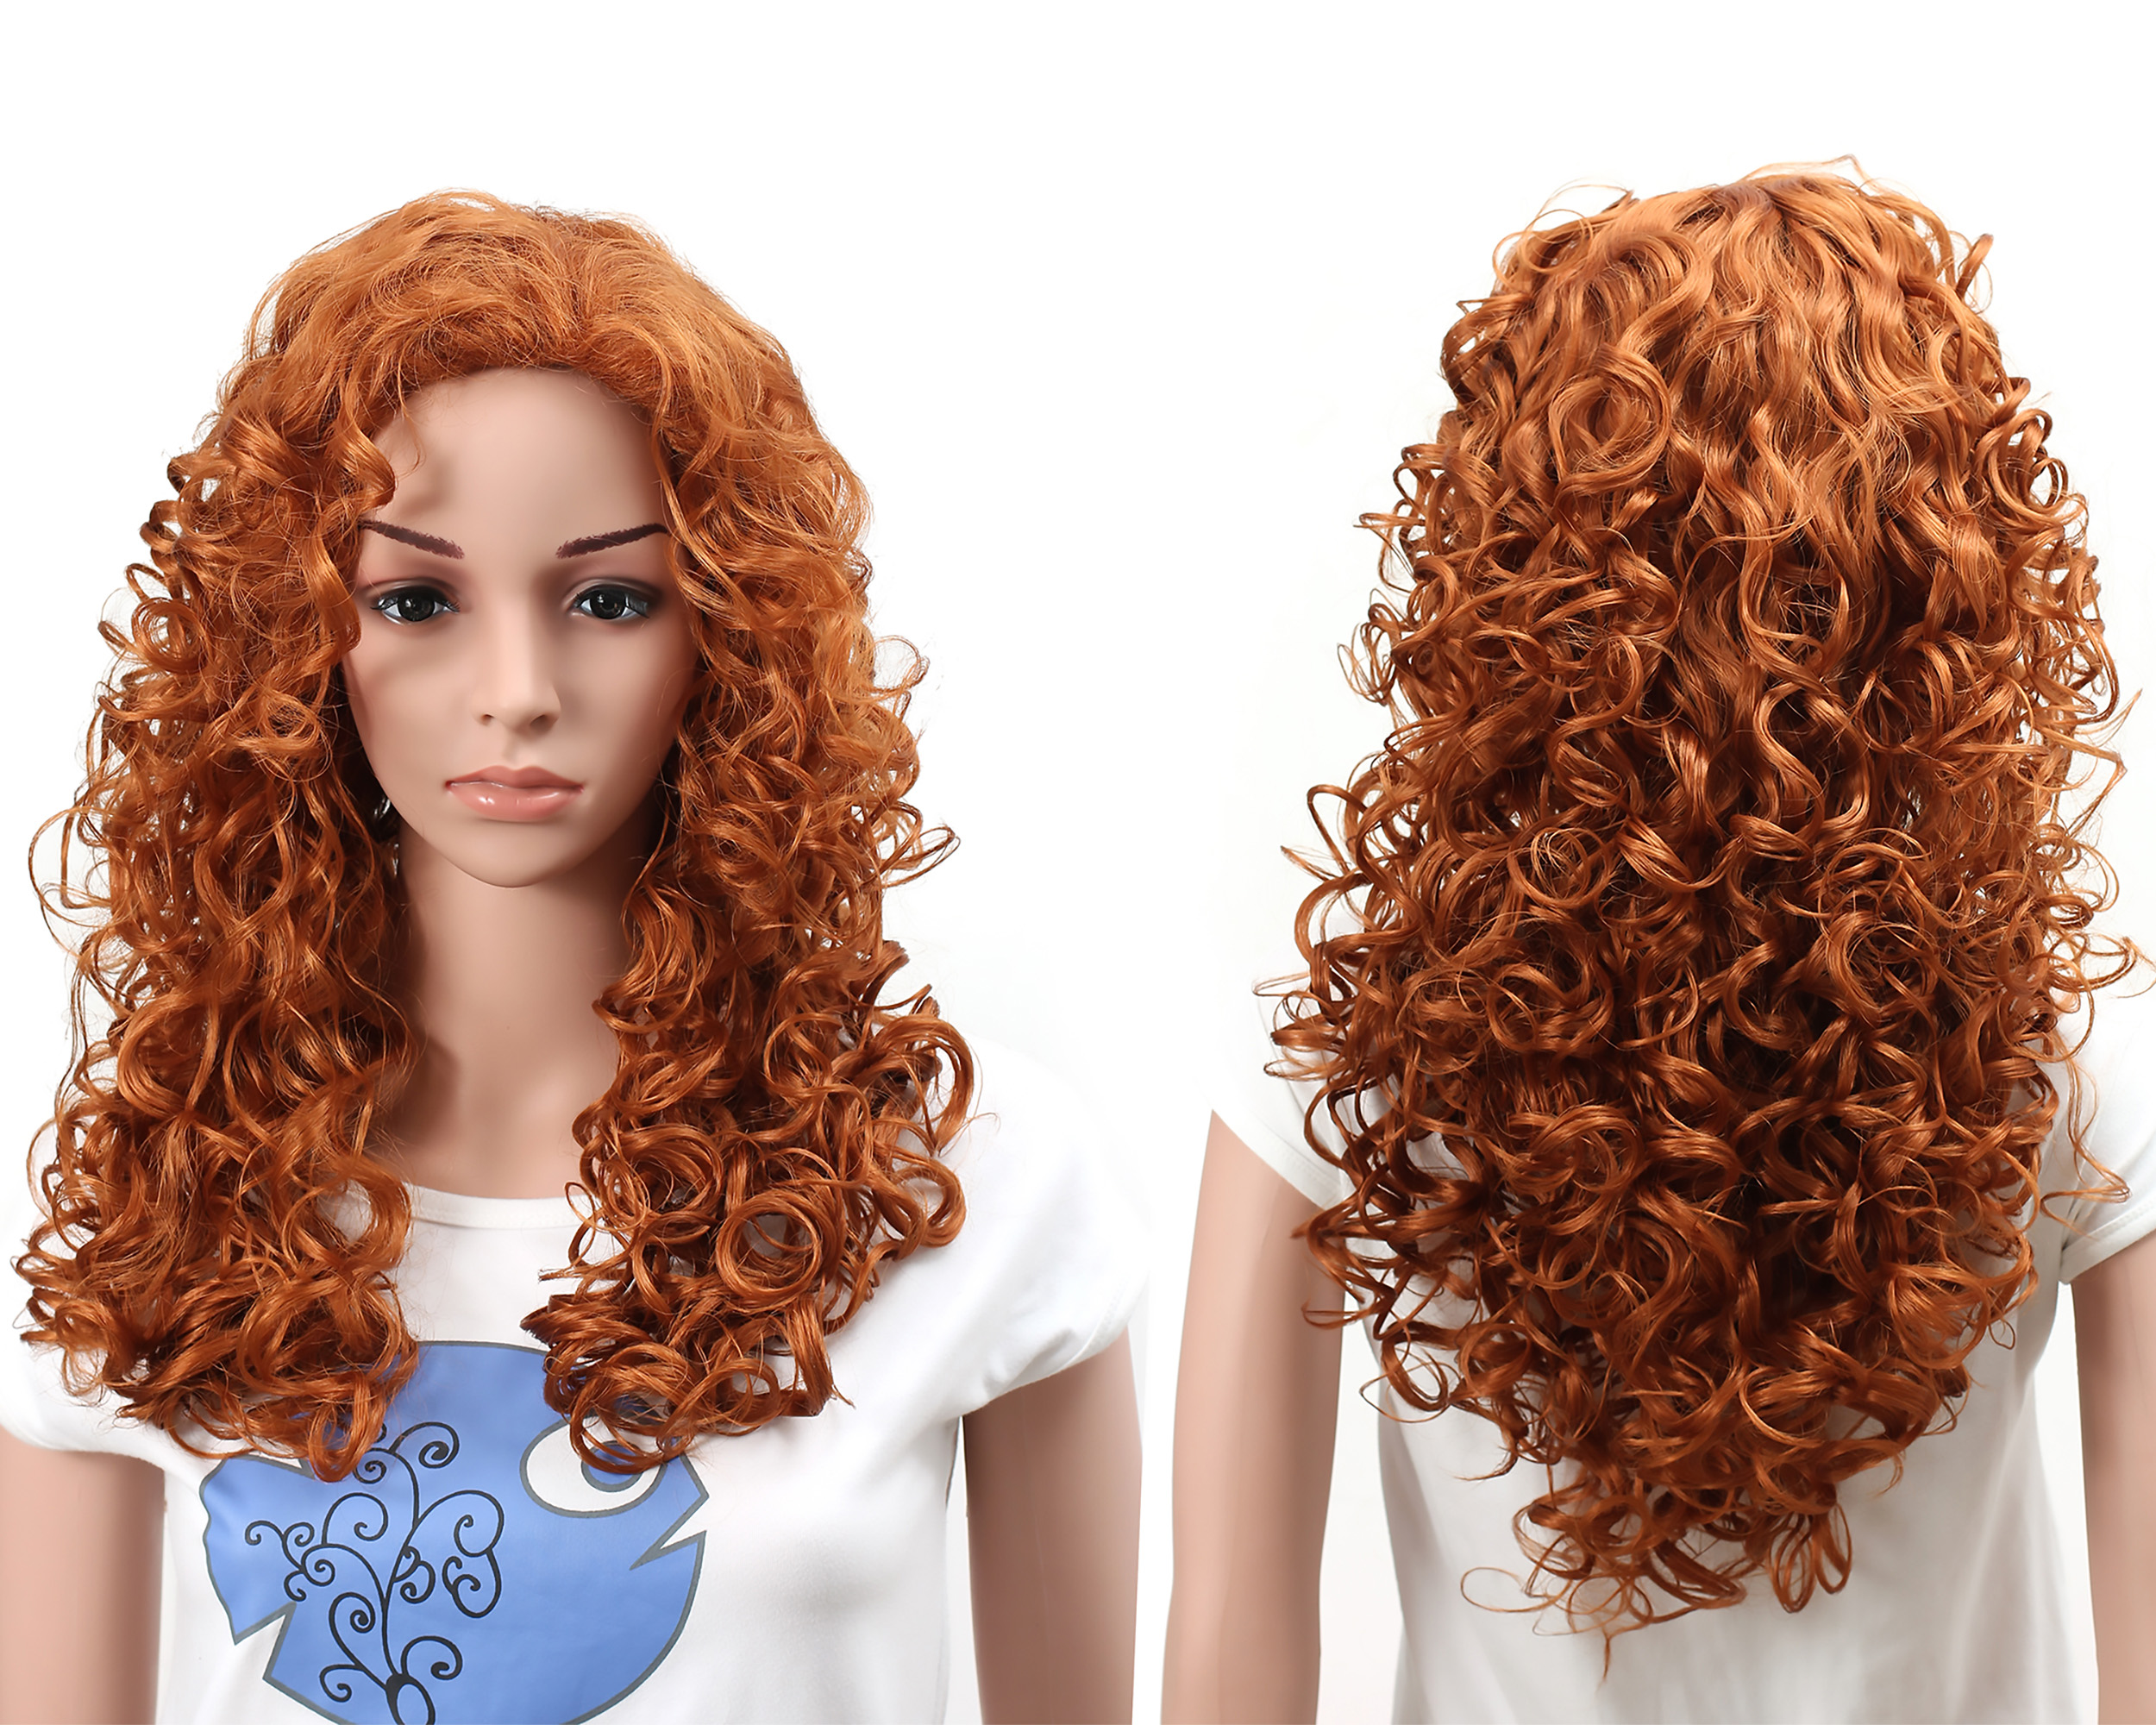 Consider, that curly natural redhead